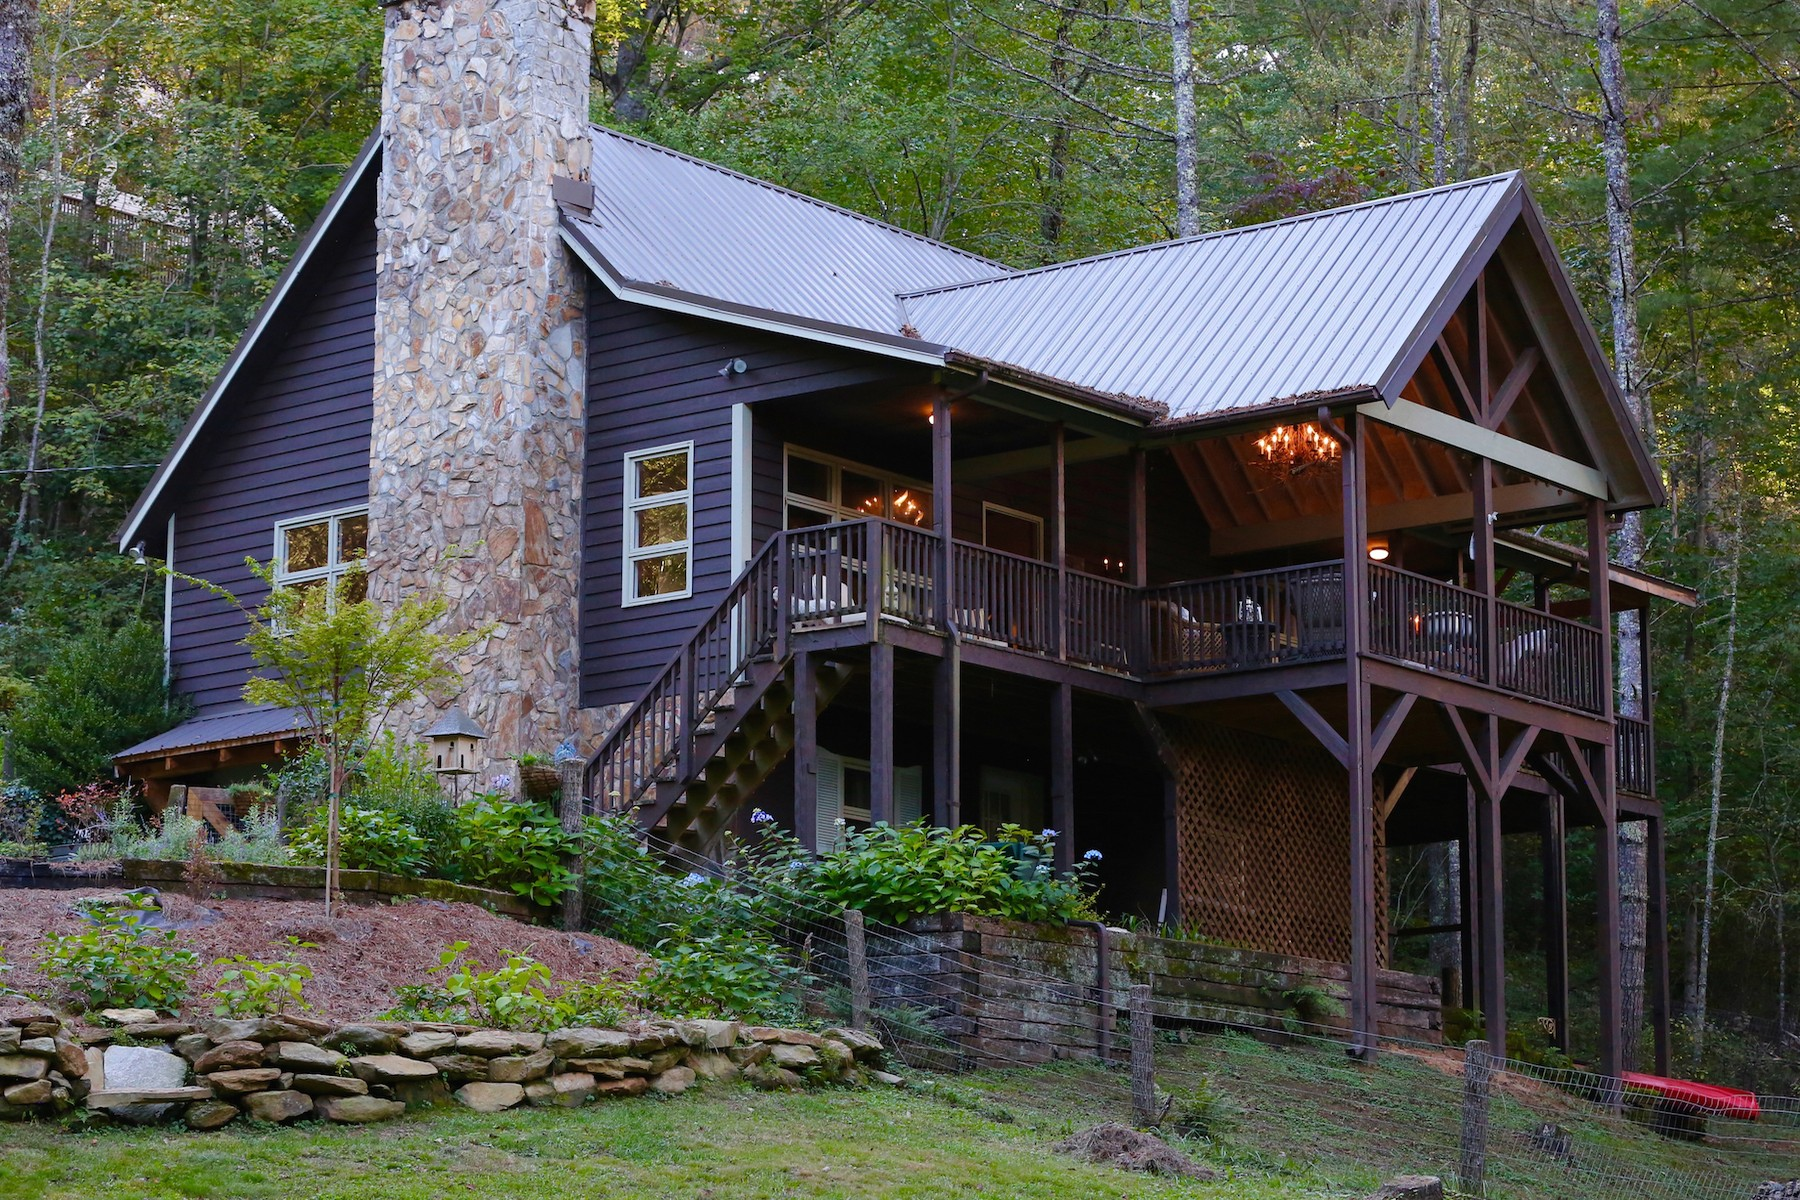 Single Family Home for Active at 340 Caribou Mountain Road Cullowhee, North Carolina 28723 United States